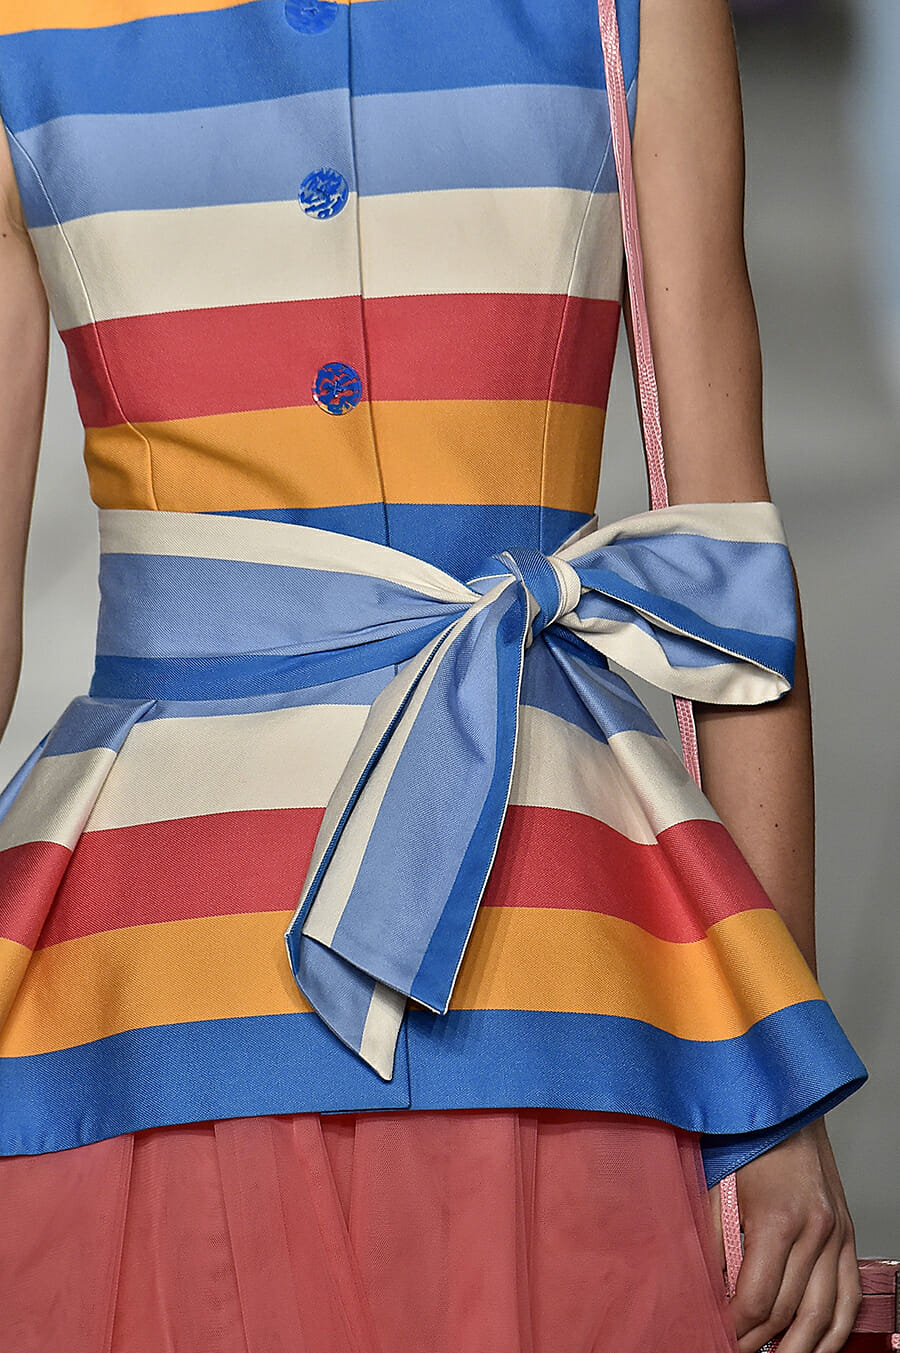 Carolina-Herrera-New-York-Fashion-Week-Spring-Summer-2018-NY-September-2017-look8-detail2